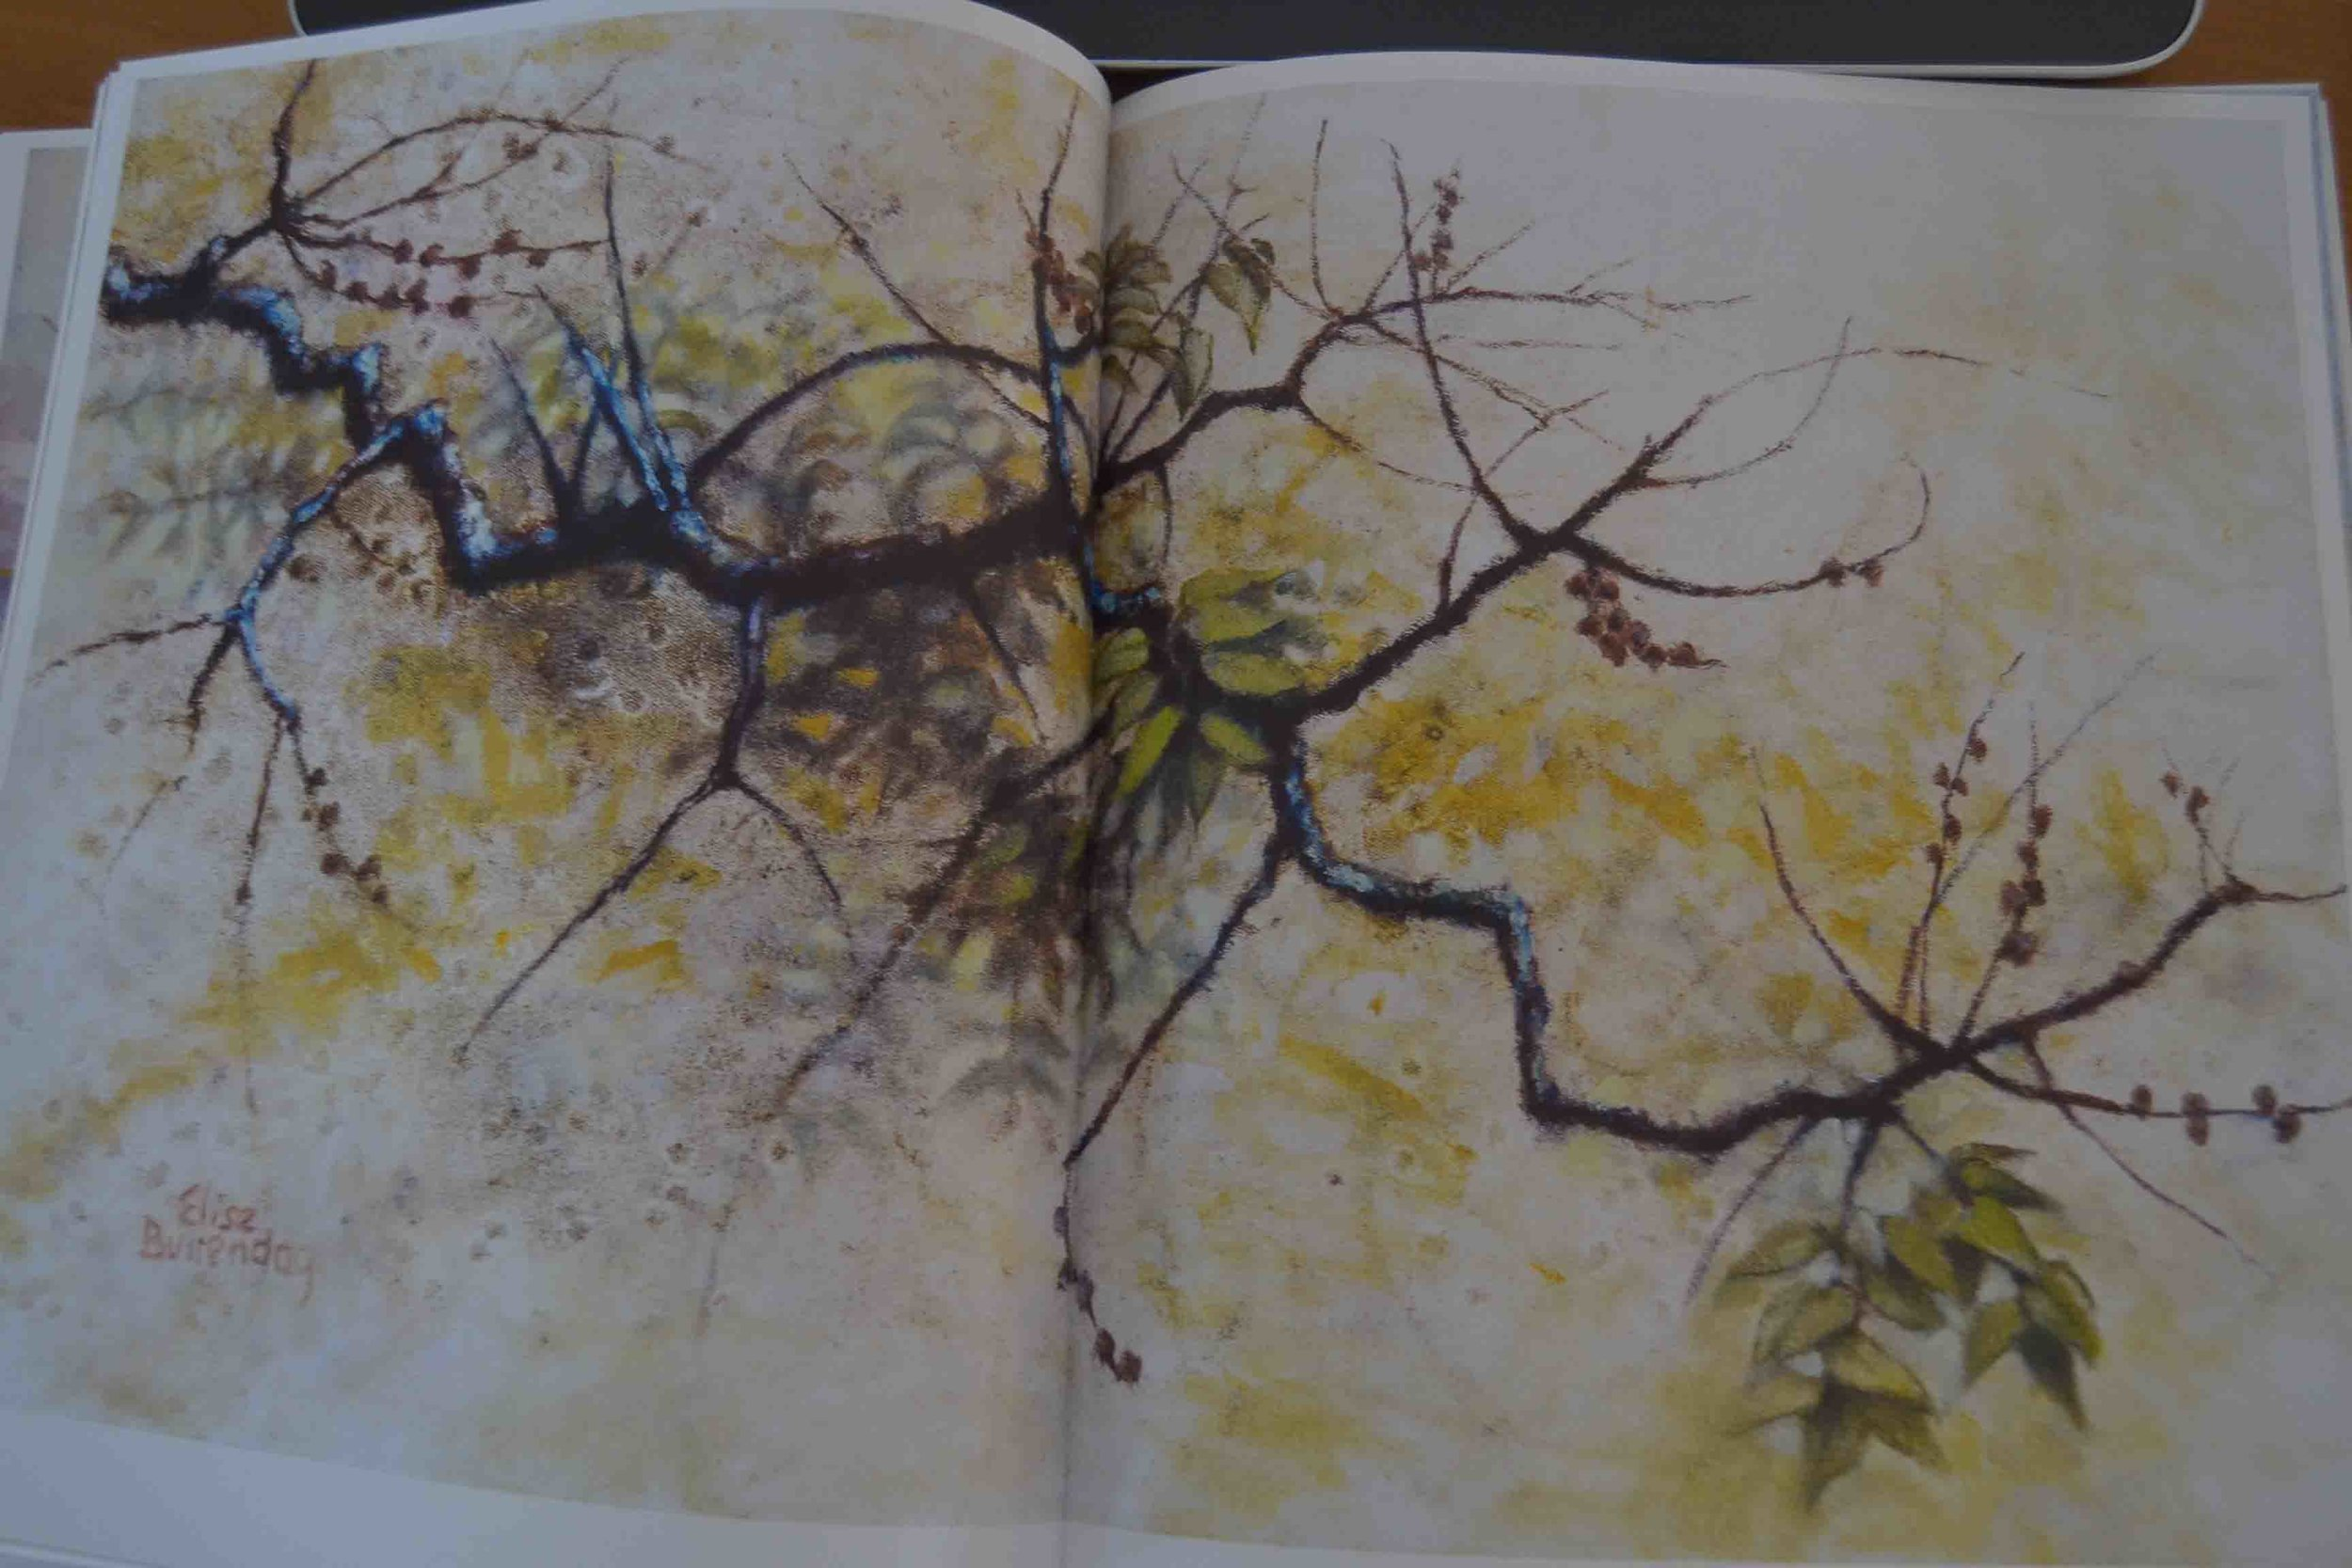 "Elise Buitendag Artwork in her Book ""Genesis of a Garden"""